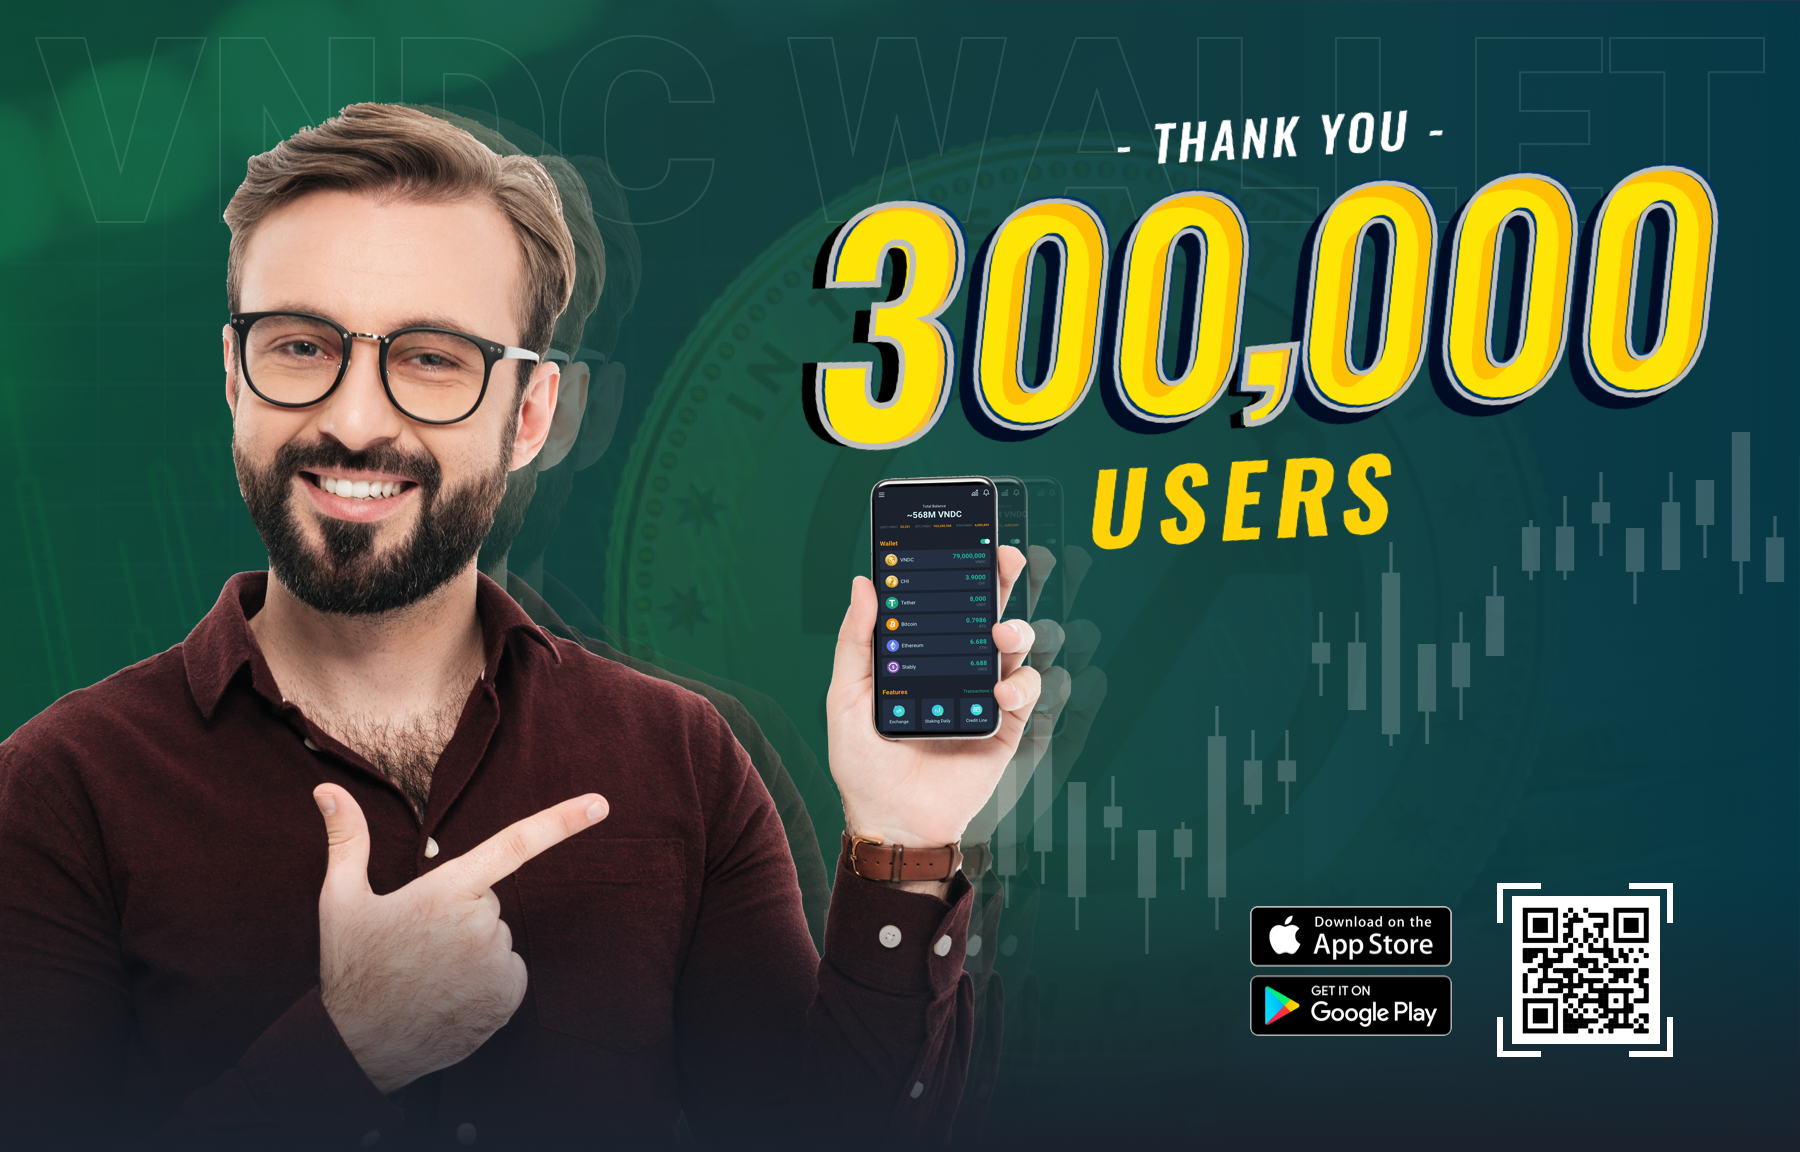 VNDC hits over 300,000 users